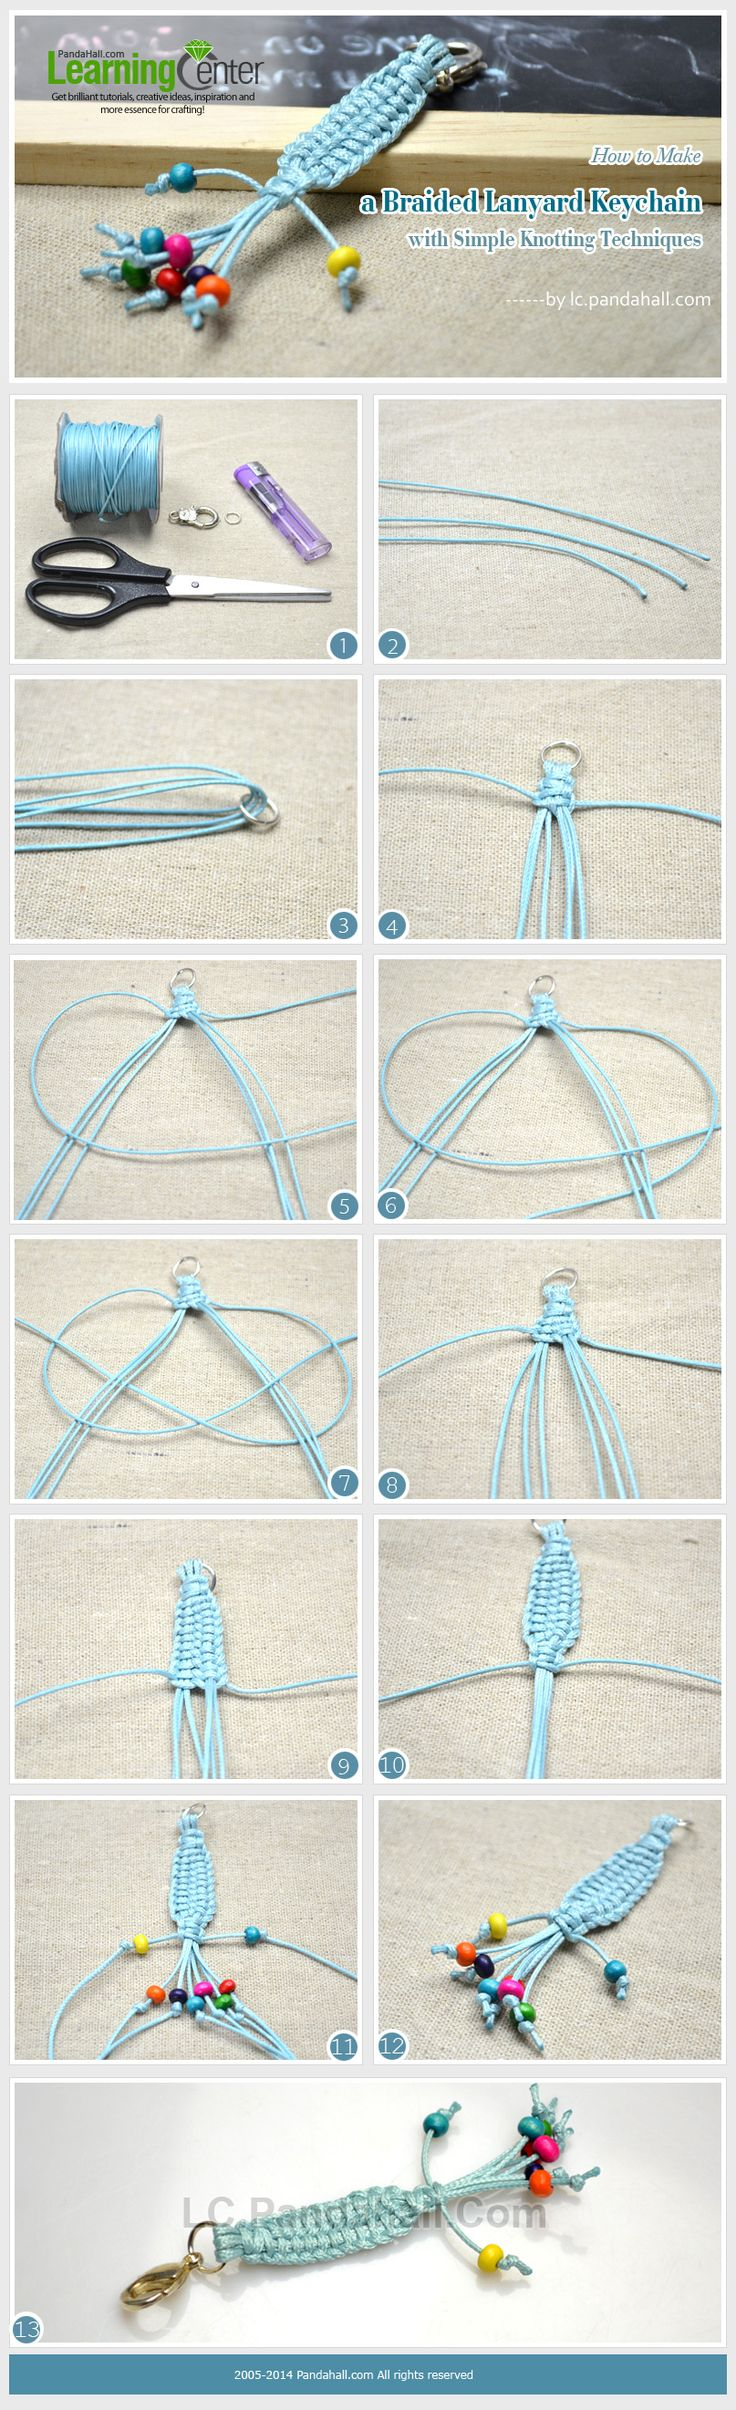 How to Make a Braided Lanyard Keychain with Simple Knotting Techniques